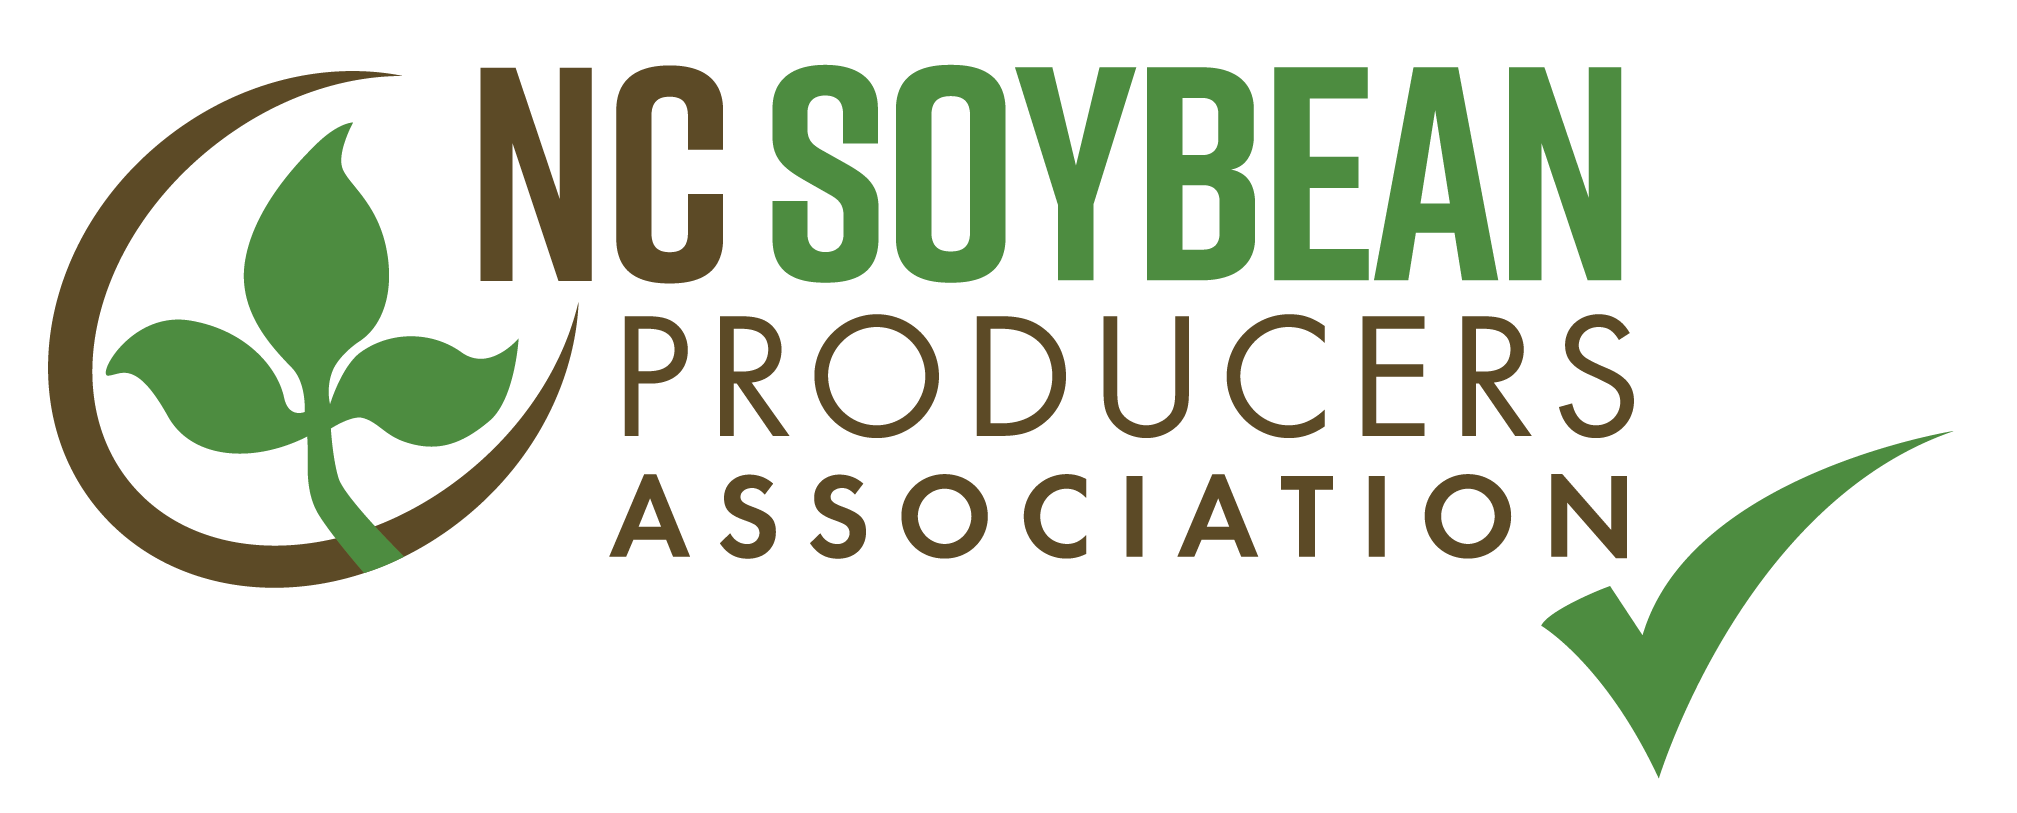 NC Soybean Producers Association logo